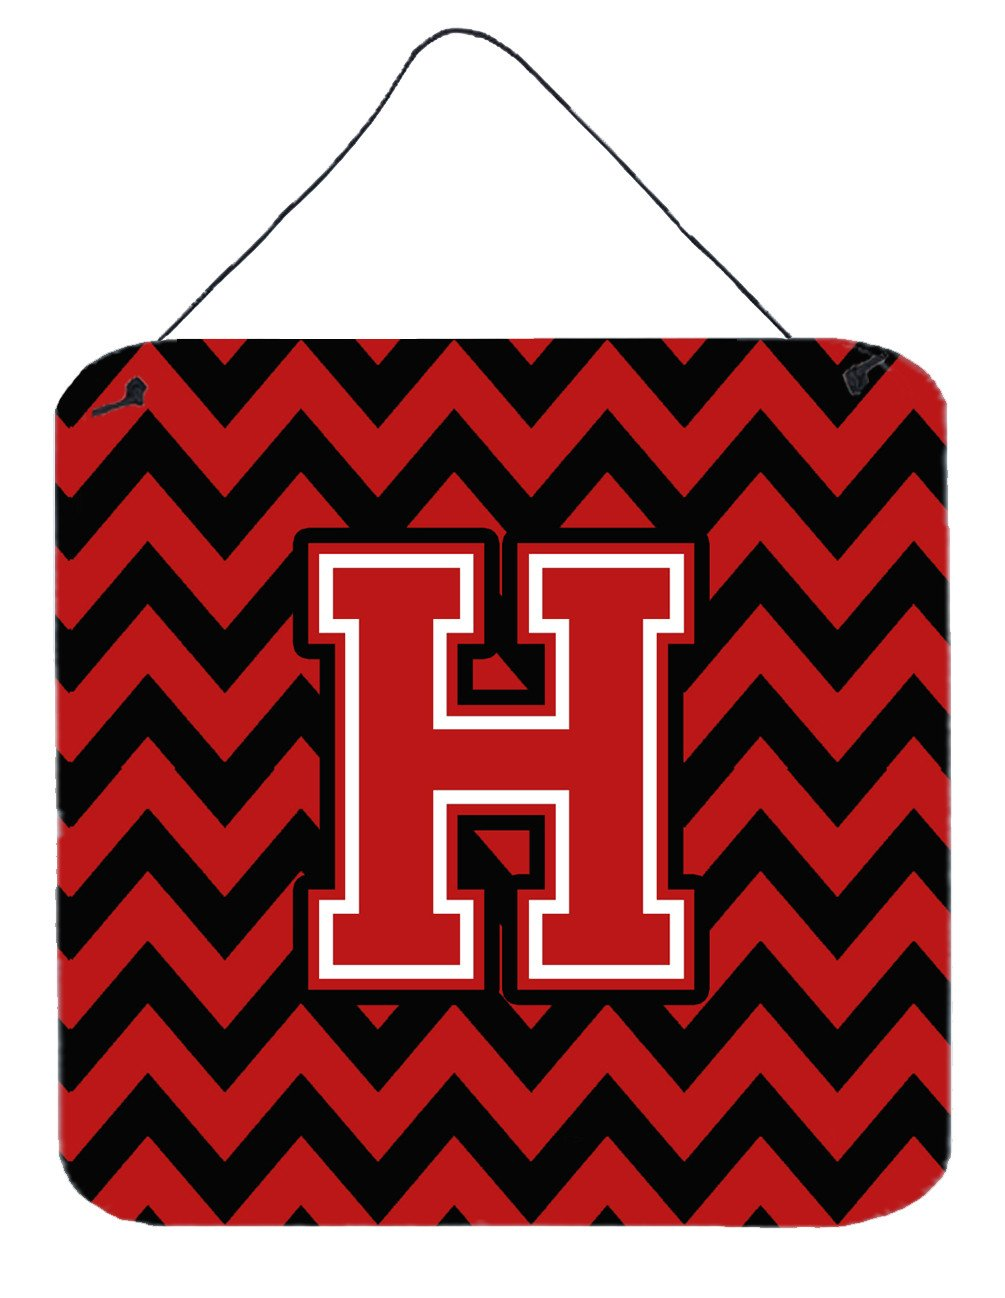 Letter H Chevron Black and Red   Wall or Door Hanging Prints CJ1047-HDS66 by Caroline's Treasures